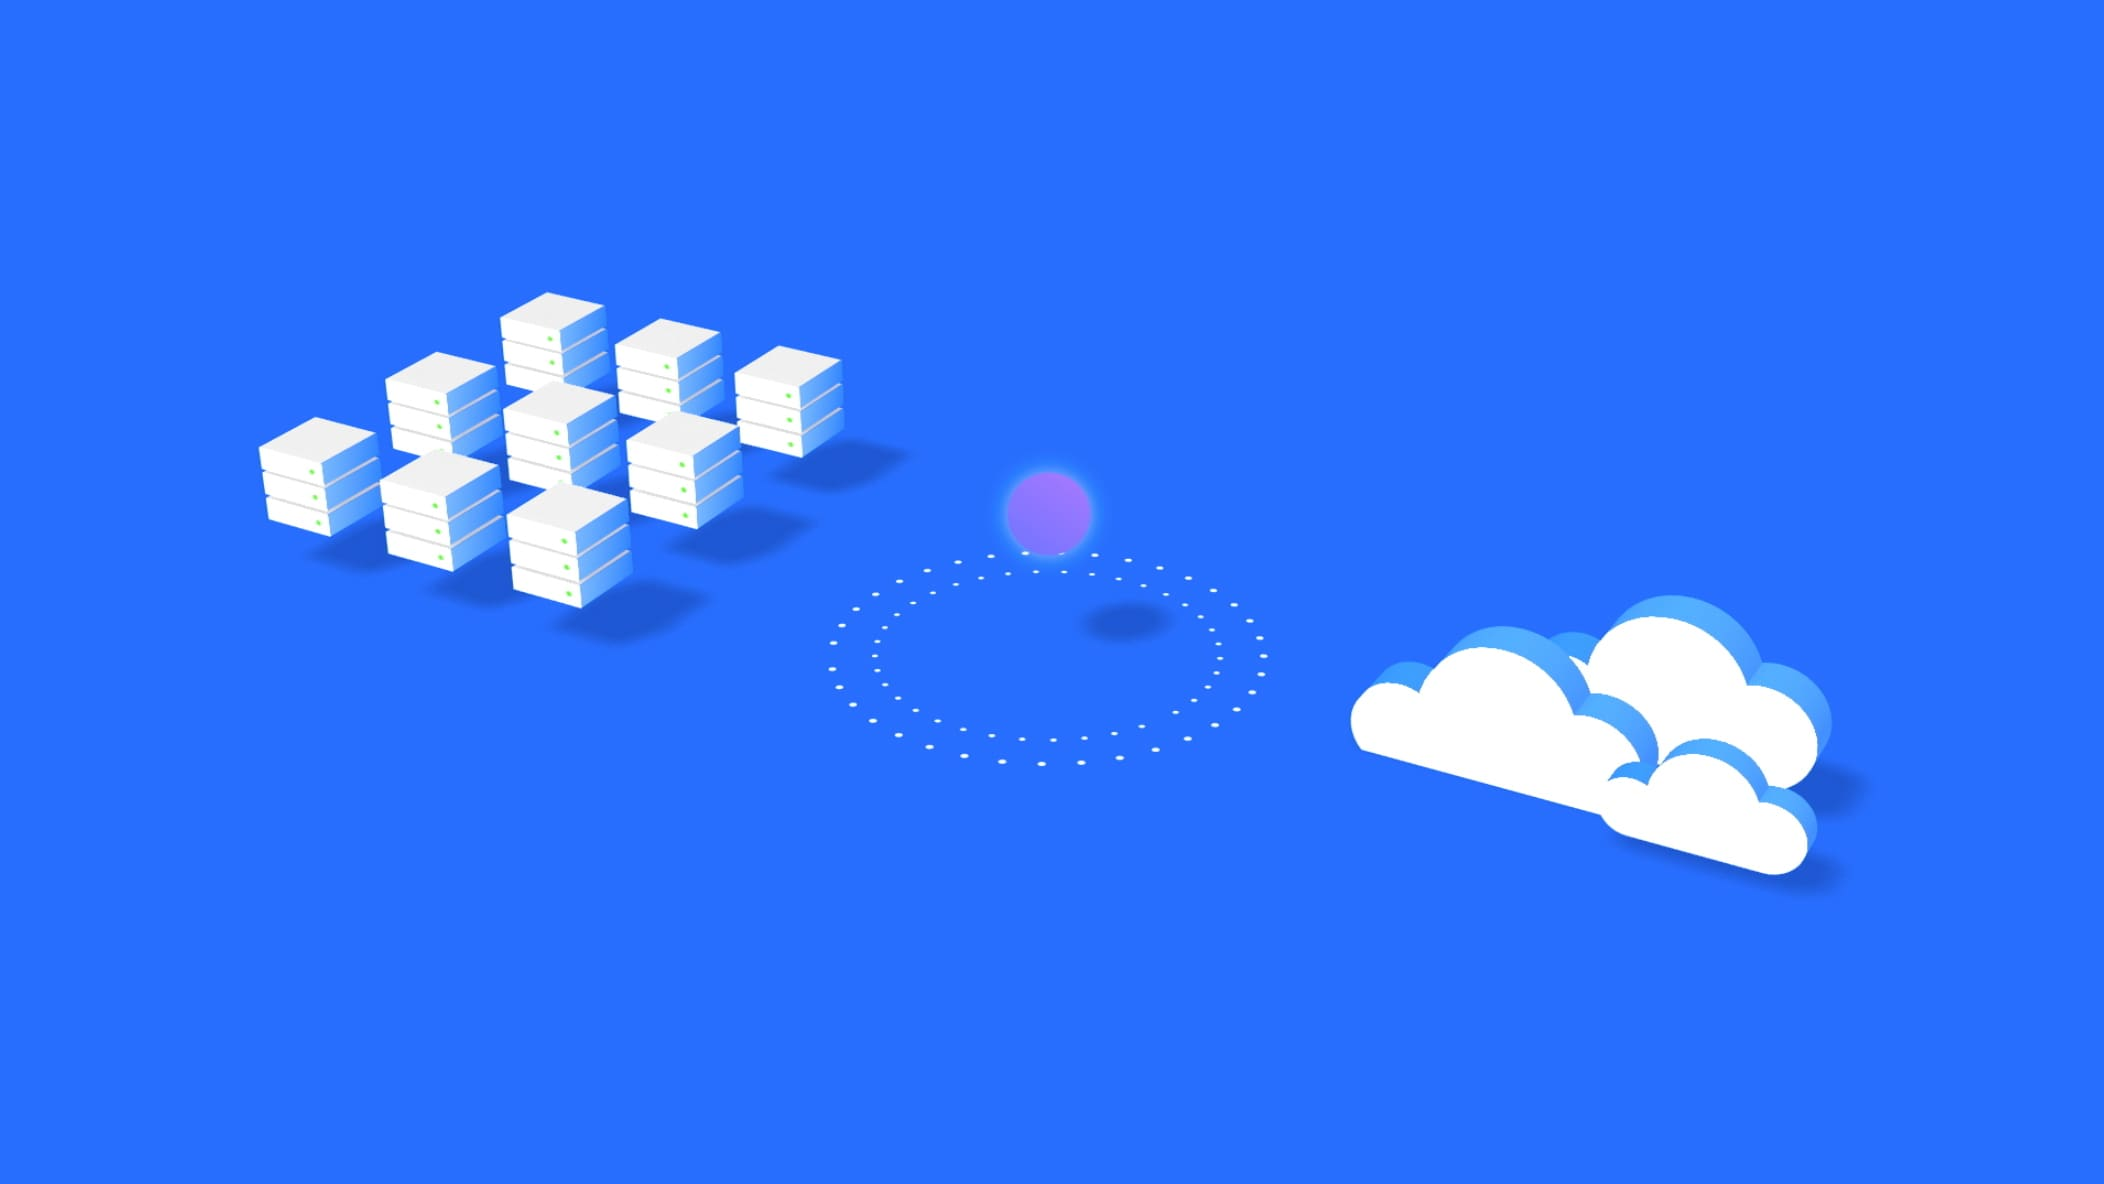 white blocks, circle and clouds on blue background